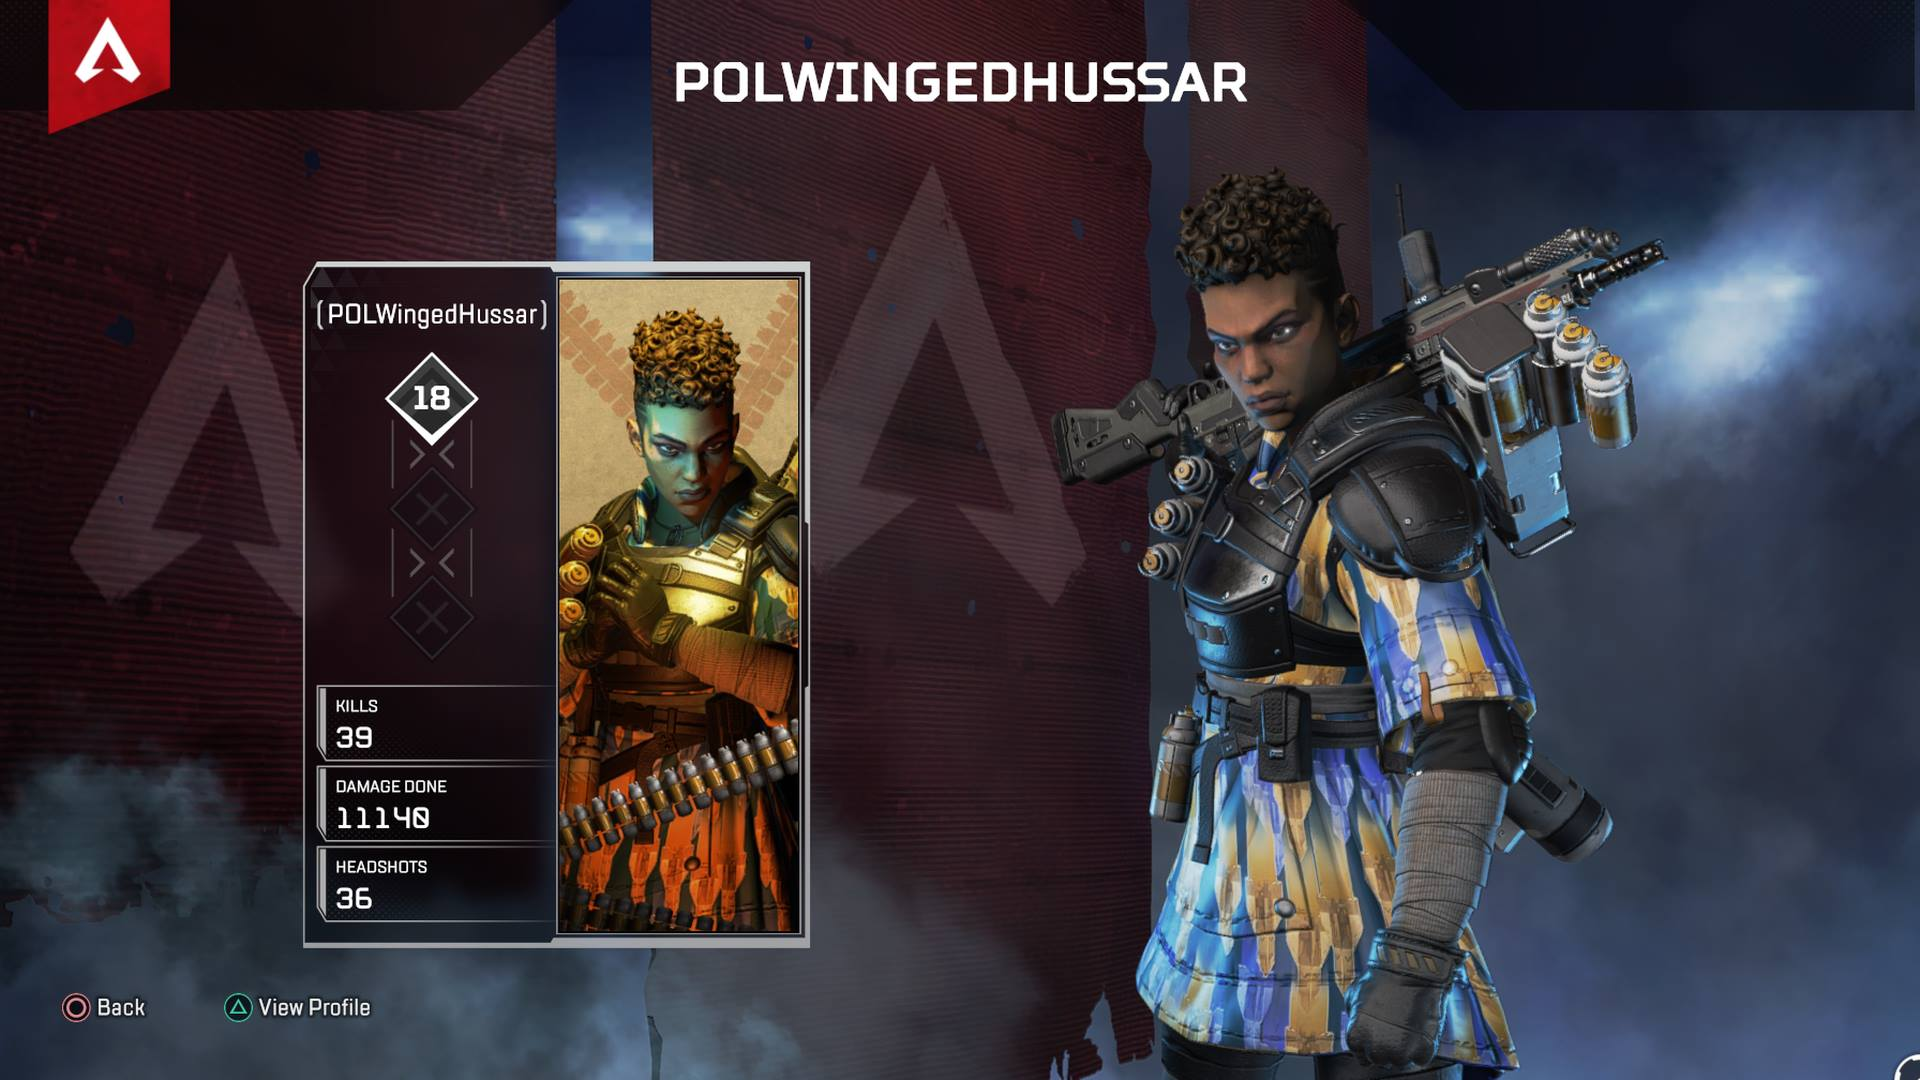 In Apex Legends, your stats are tied to each individual Legend rather than your profile as a whole.